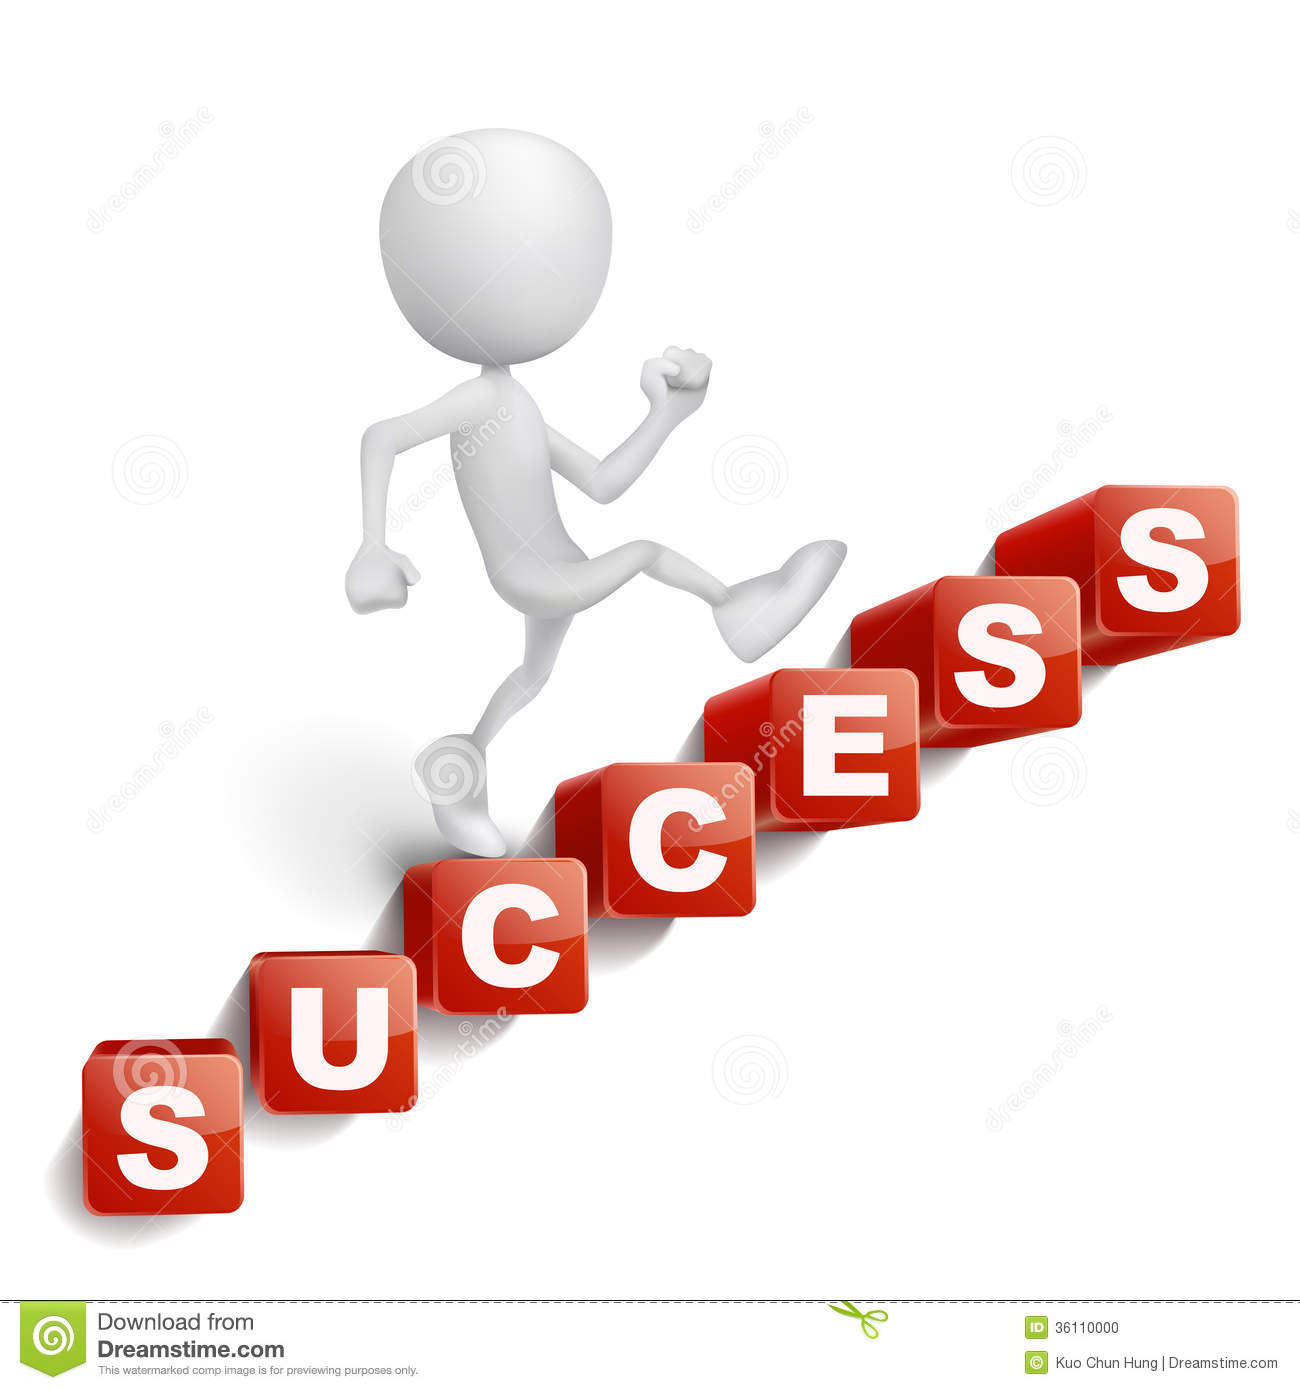 Pathway clipart success Free images collections images clipart